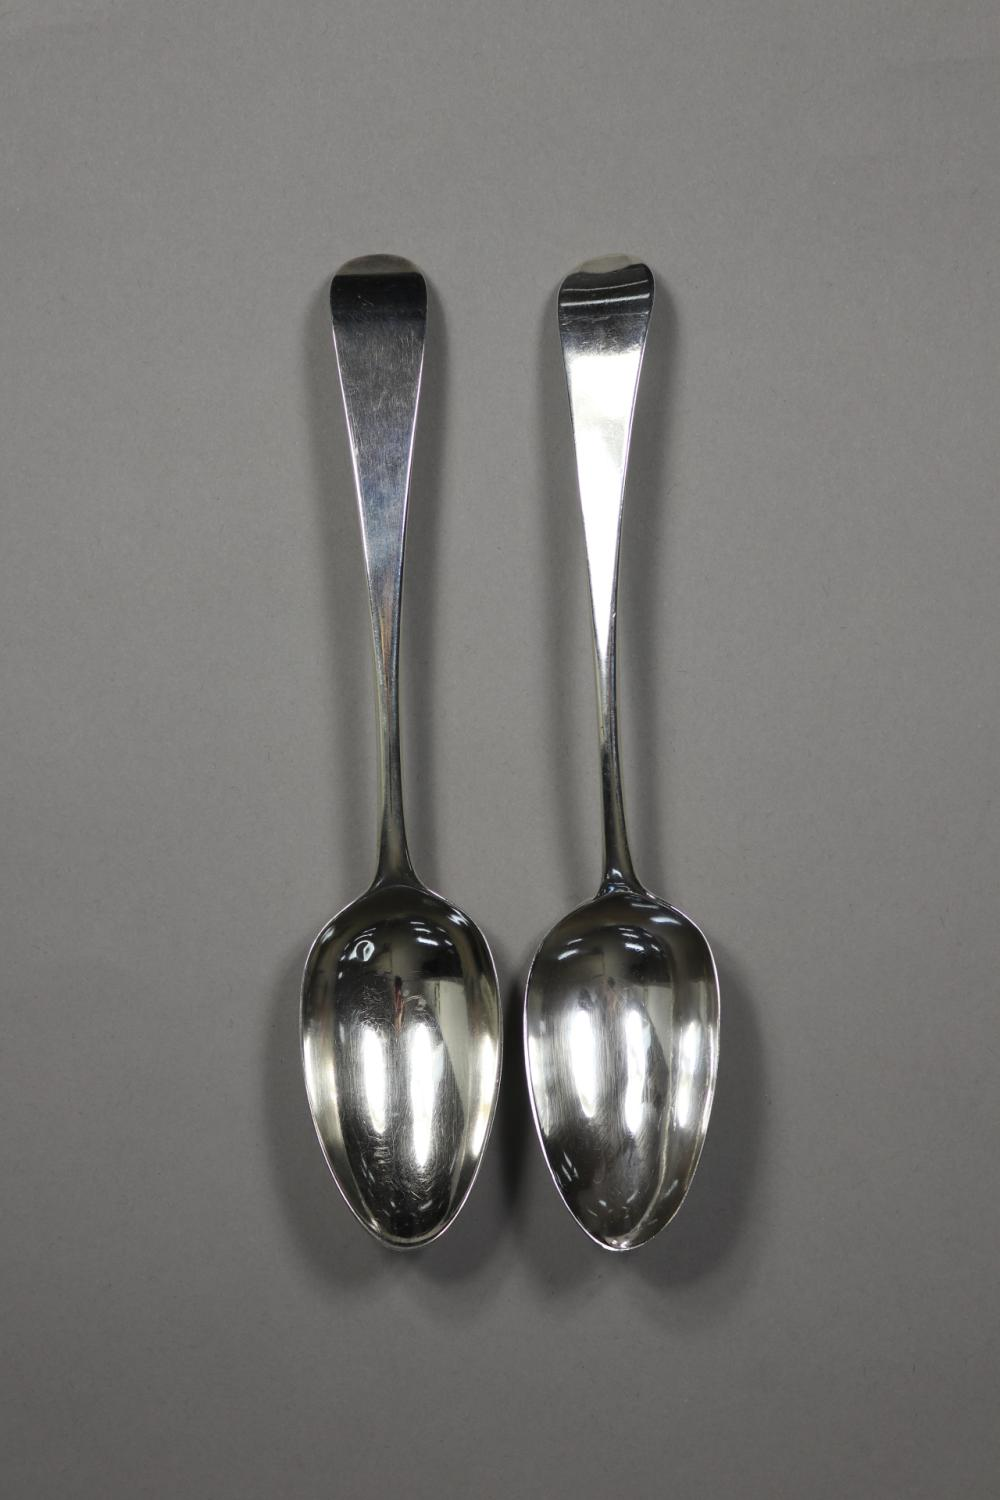 Pair of antique George III hallmarked sterling silver table spoons, London 1776 & 1780, by Hester Batman, approx 115 grams